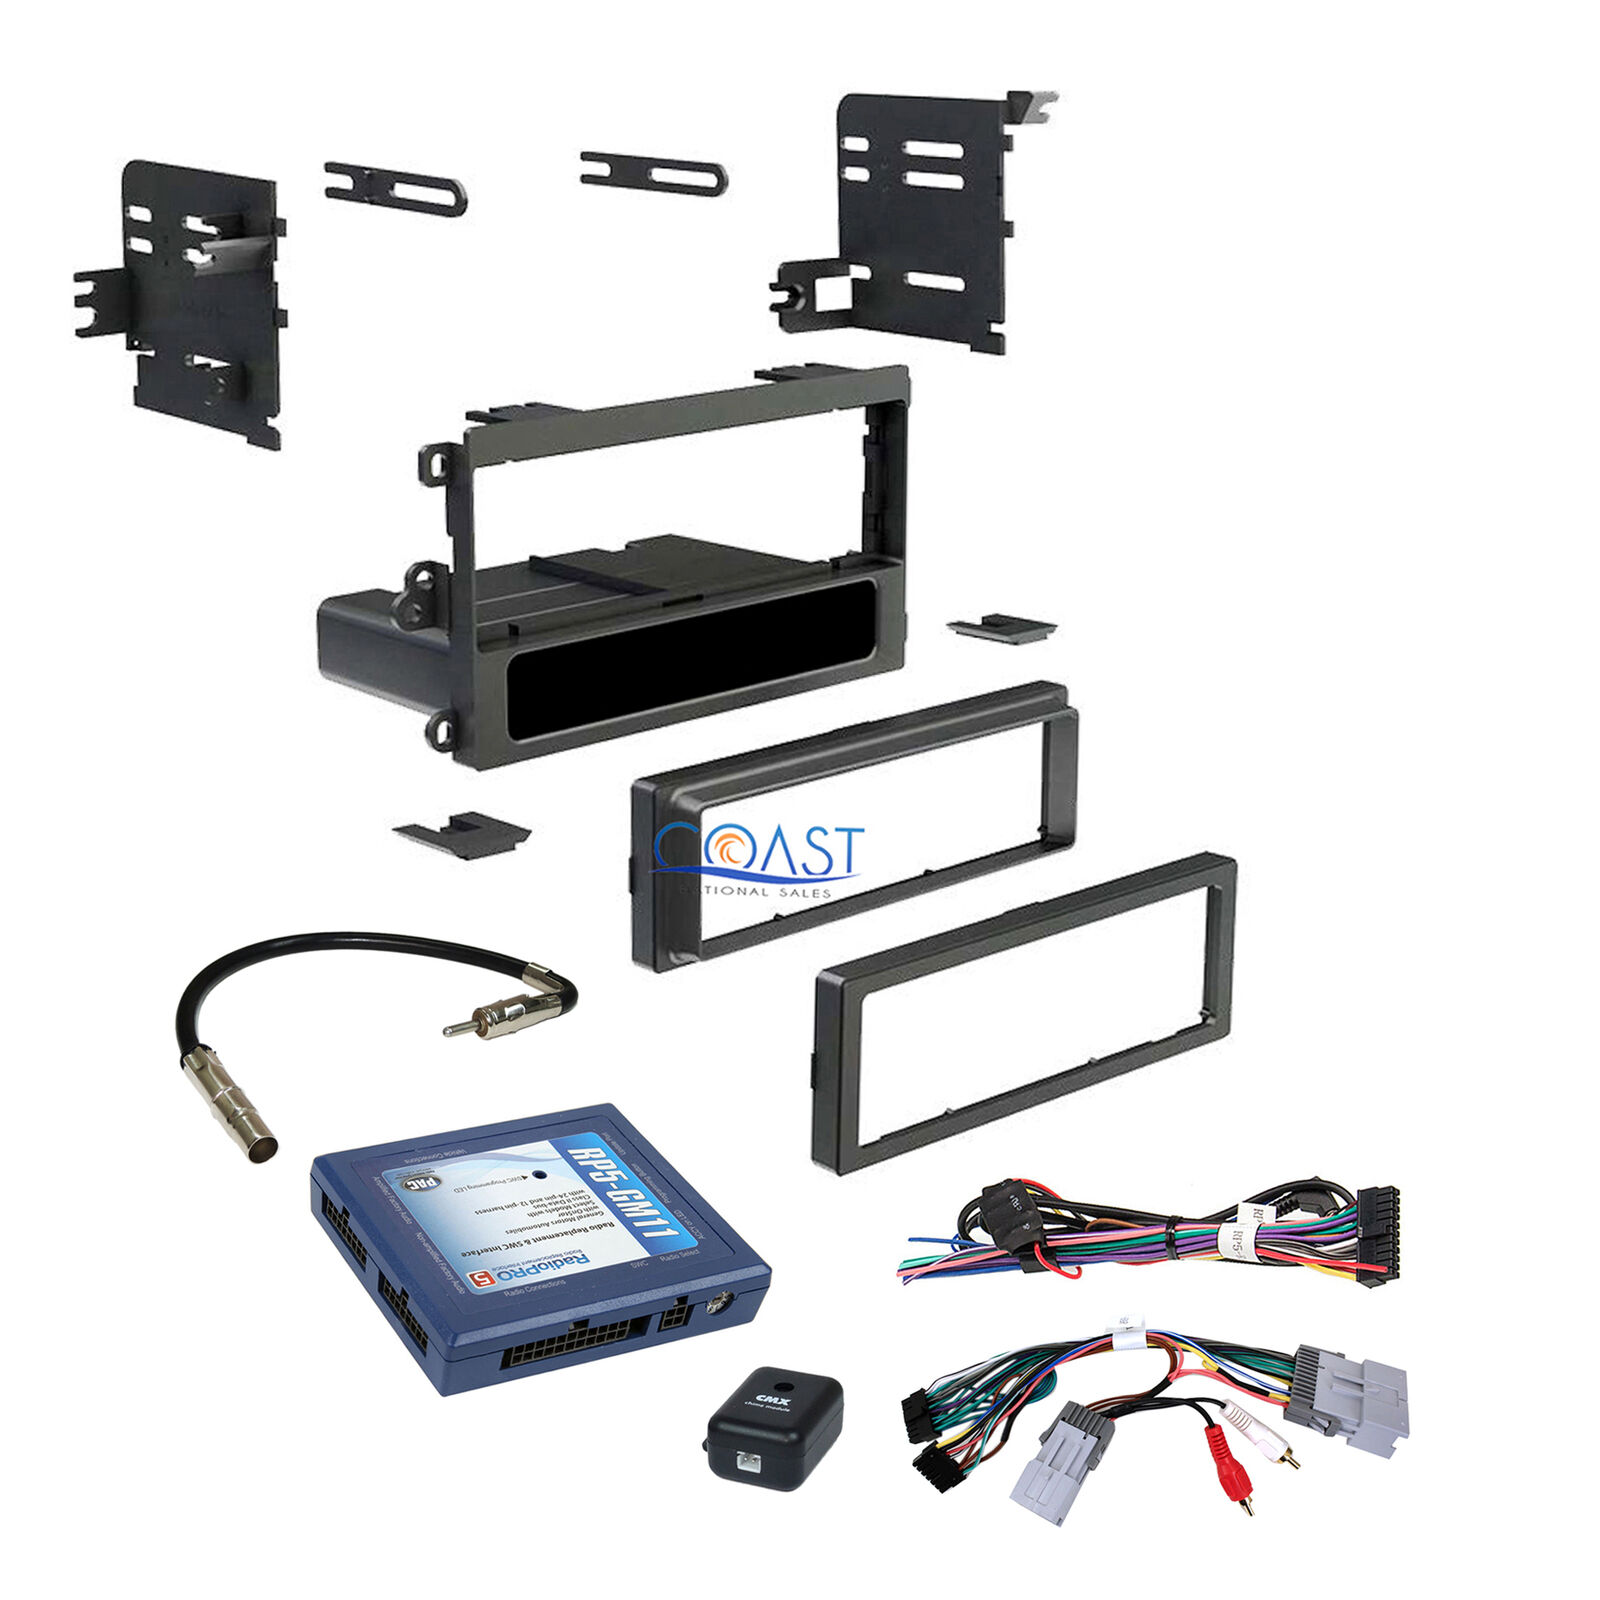 Car Stereo Single Din Dash Kit Bose Onstar Interface Harness For Wiring 1 Of 5free Shipping